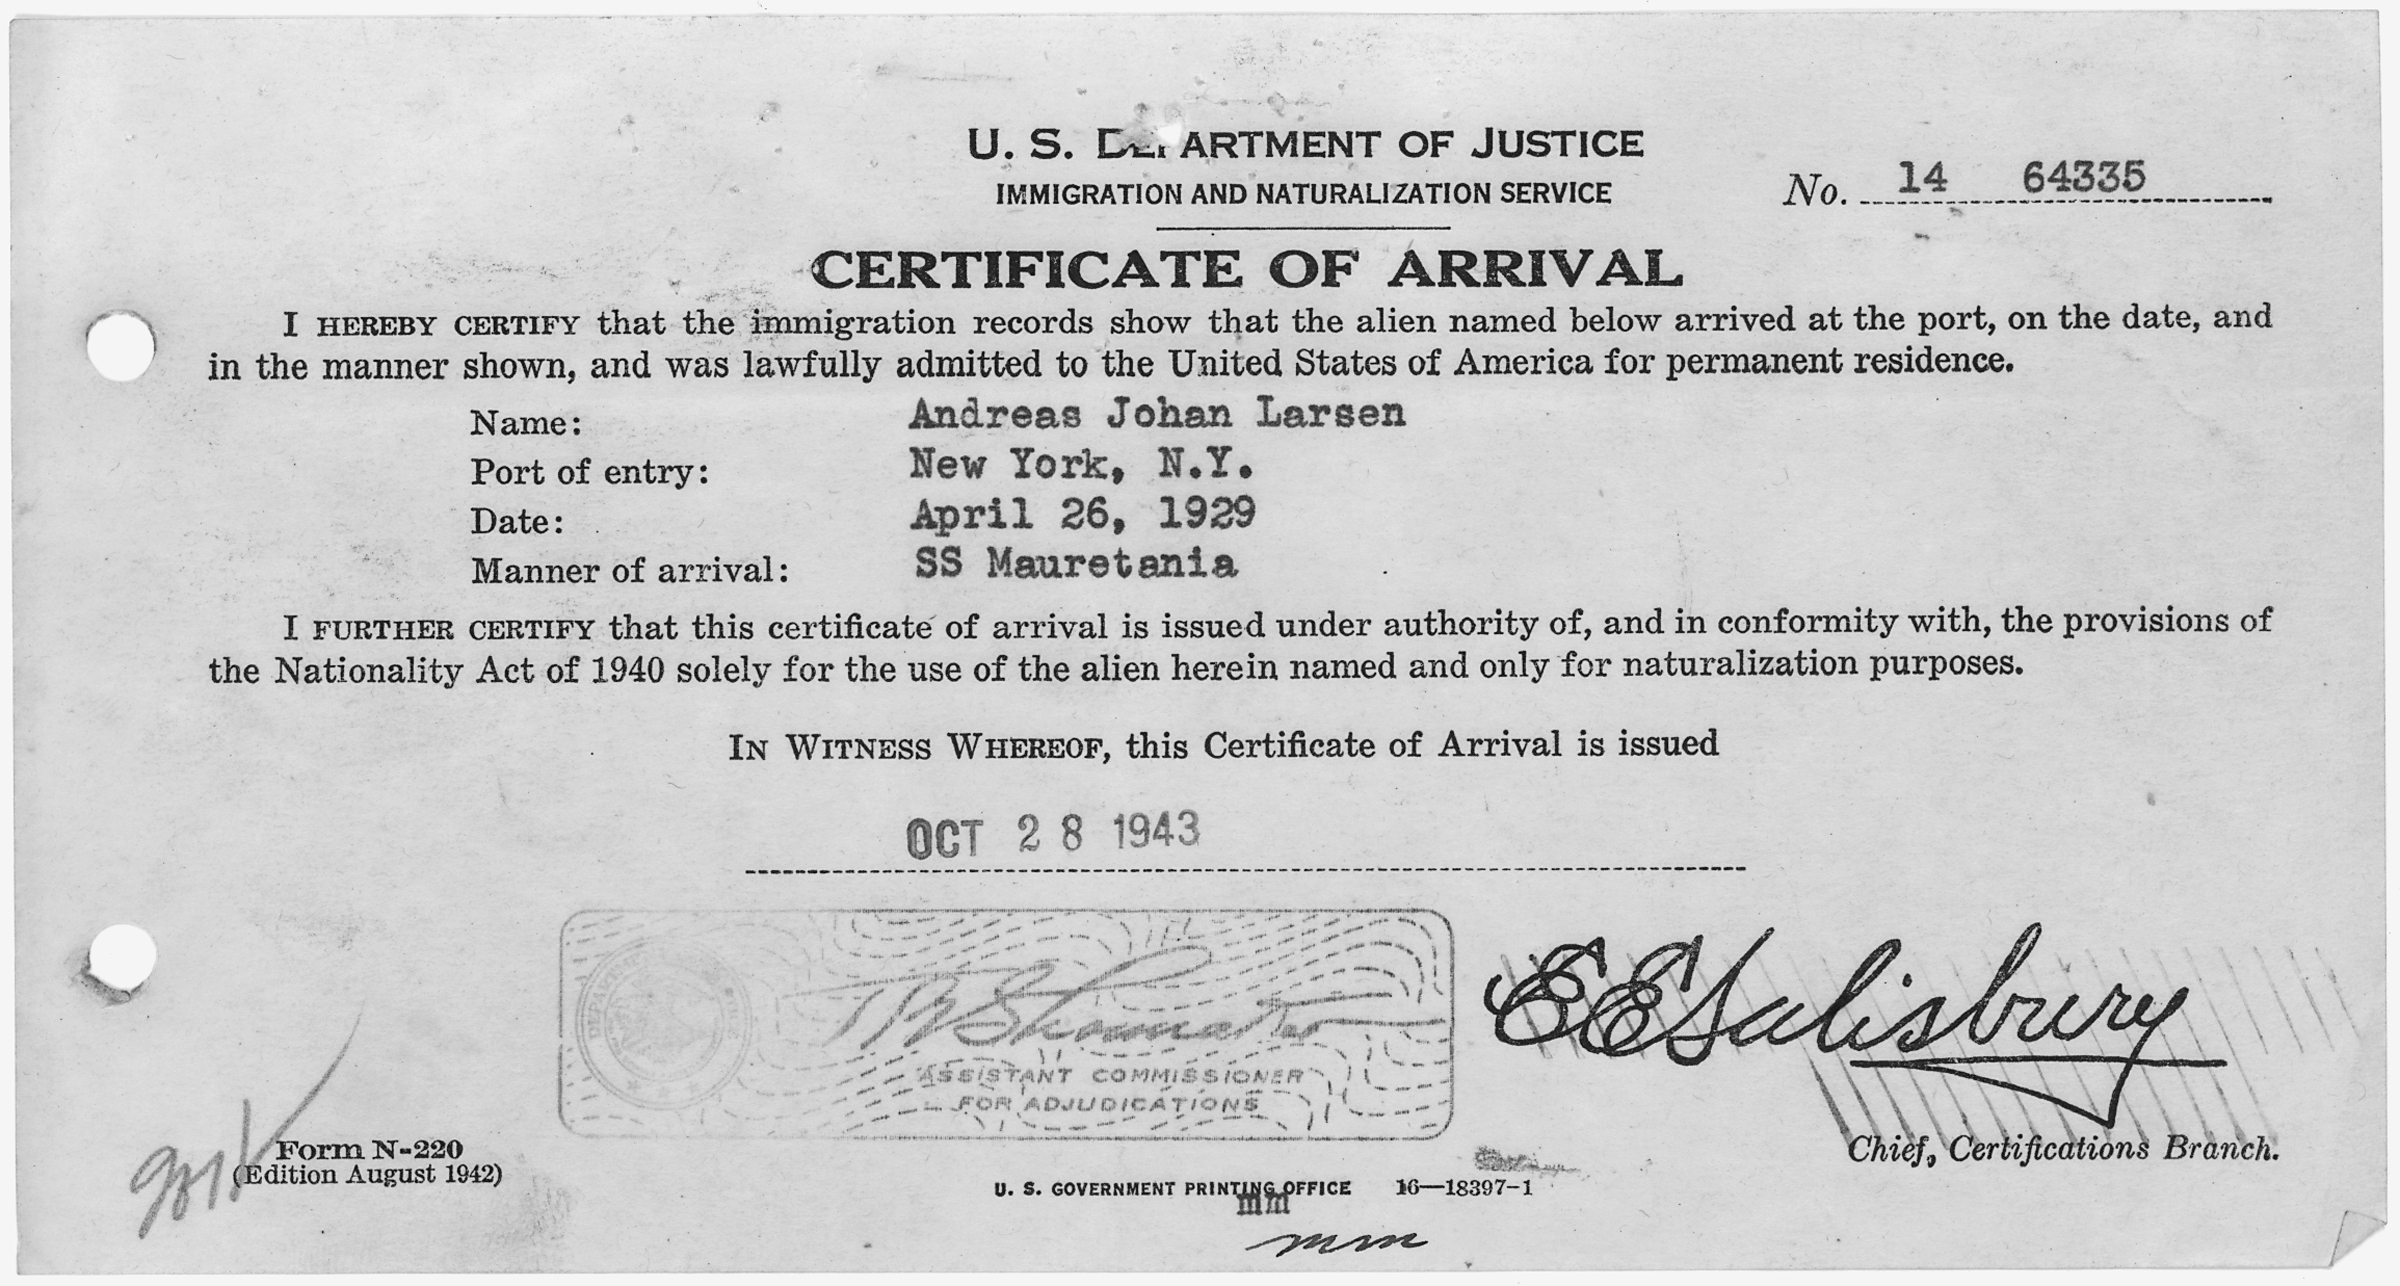 File:Certificate of Arrival for Andreas Johan Larsen